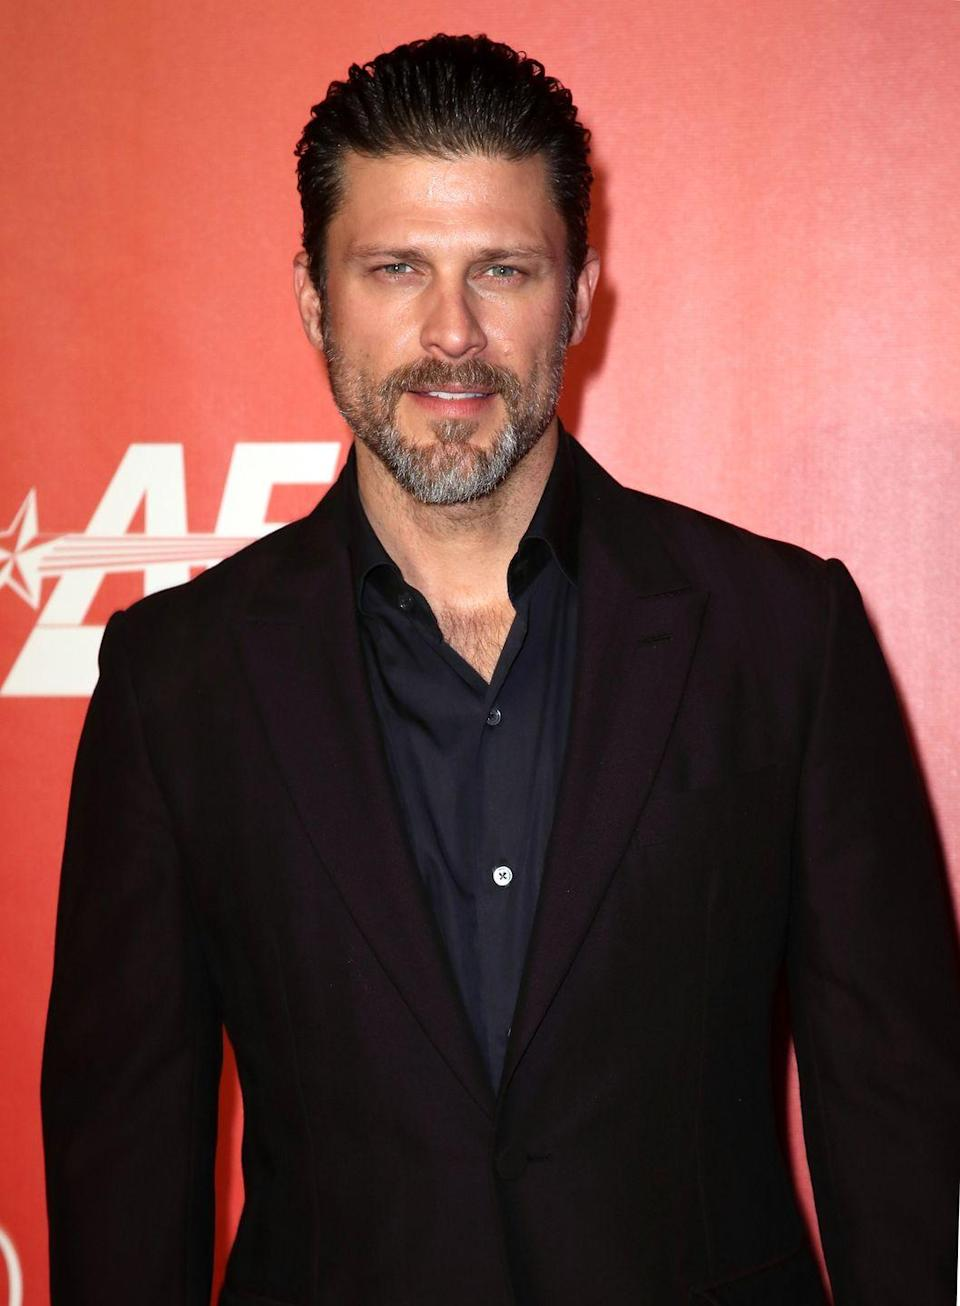 "<p>After playing Eric Brady for eight seasons, Greg Vaughn announced he was leaving the show on the podcast <a href=""https://www.youtube.com/watch?v=Z3ZMiiKkN8Q"" rel=""nofollow noopener"" target=""_blank"" data-ylk=""slk:That's Awesome! With Steve and Bradford"" class=""link rapid-noclick-resp""><em>That's Awesome! With Steve and Bradford</em></a> in 2020. Although his departure was said to be over contract negotiations, Vaughn said that he thought his time as Brady was ""was coming to an end anyway.""</p>"